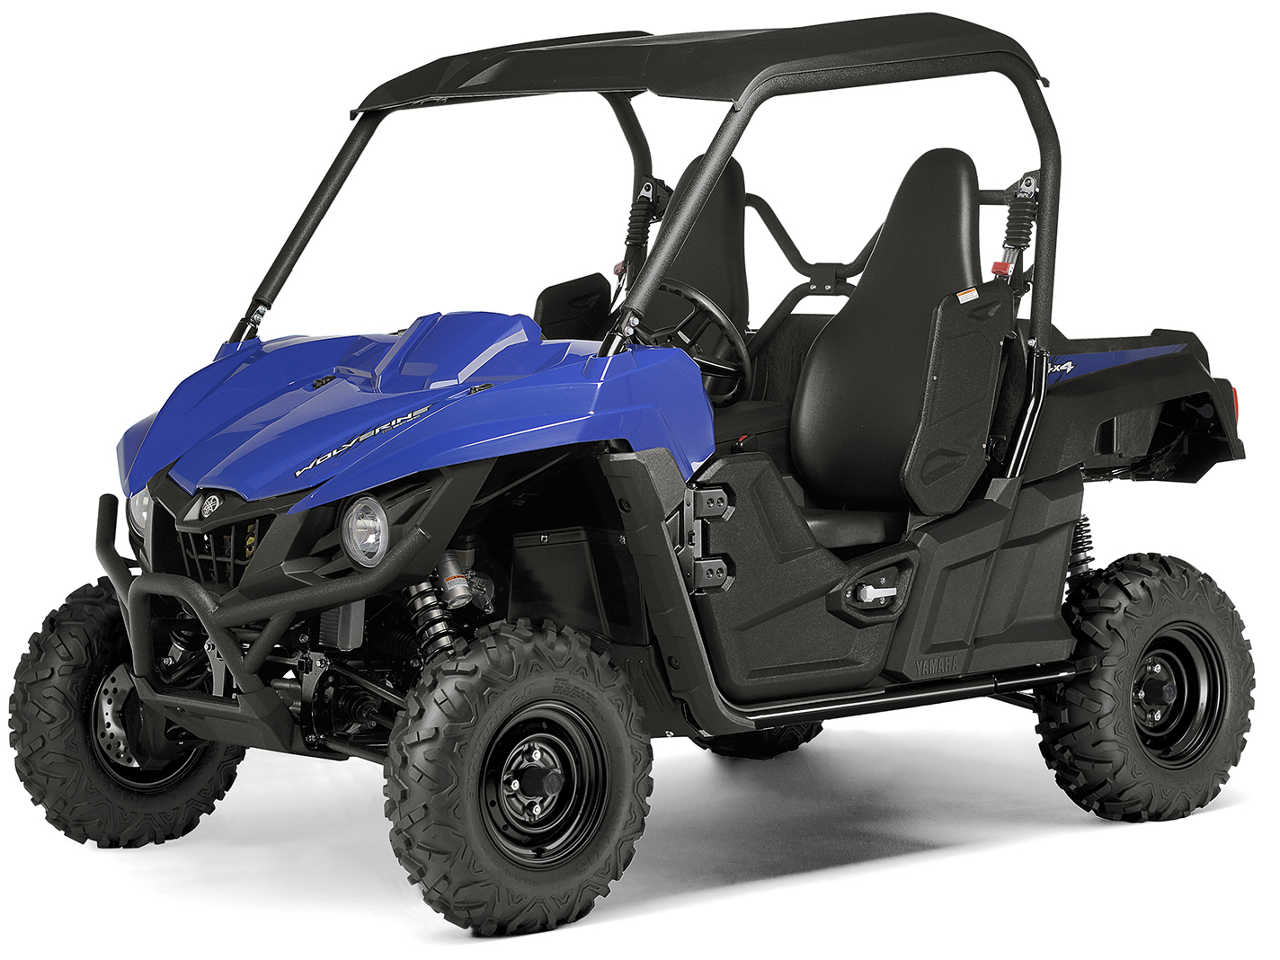 yamaha announces all new wolverine r spec side by side vehicle atv illustrated. Black Bedroom Furniture Sets. Home Design Ideas